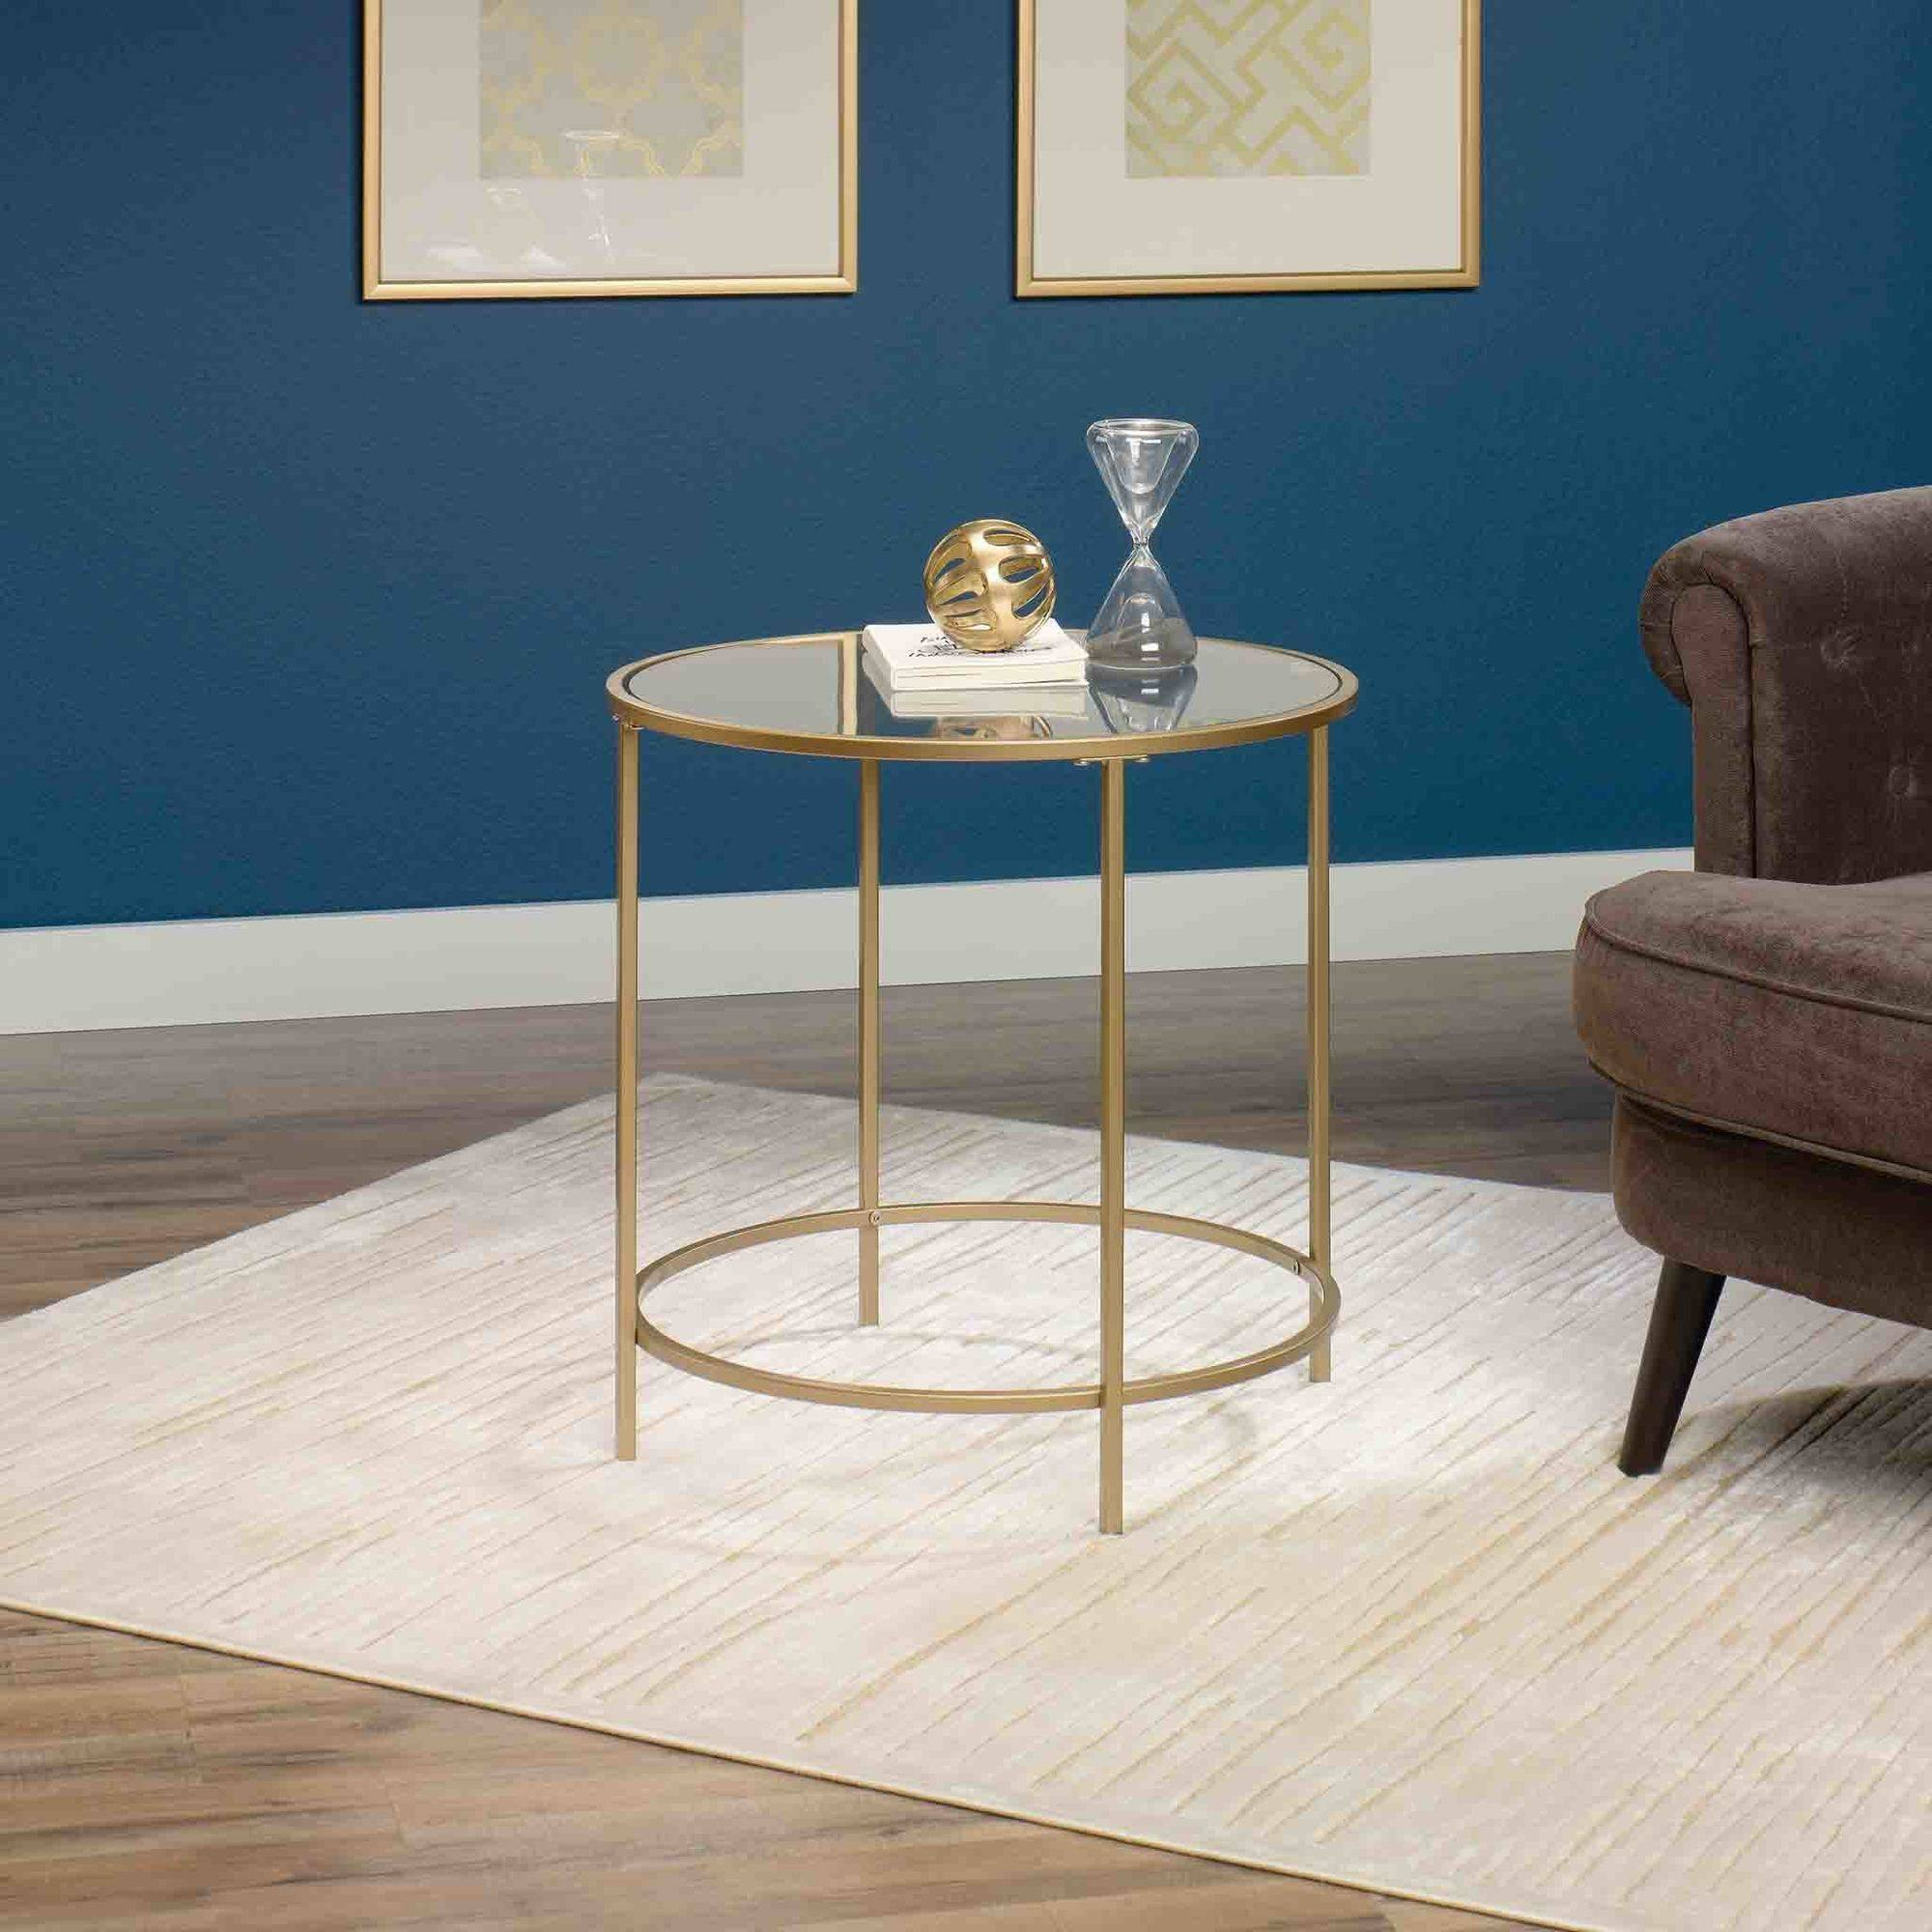 Sauder International Lux Round Side Table, Satin Gold